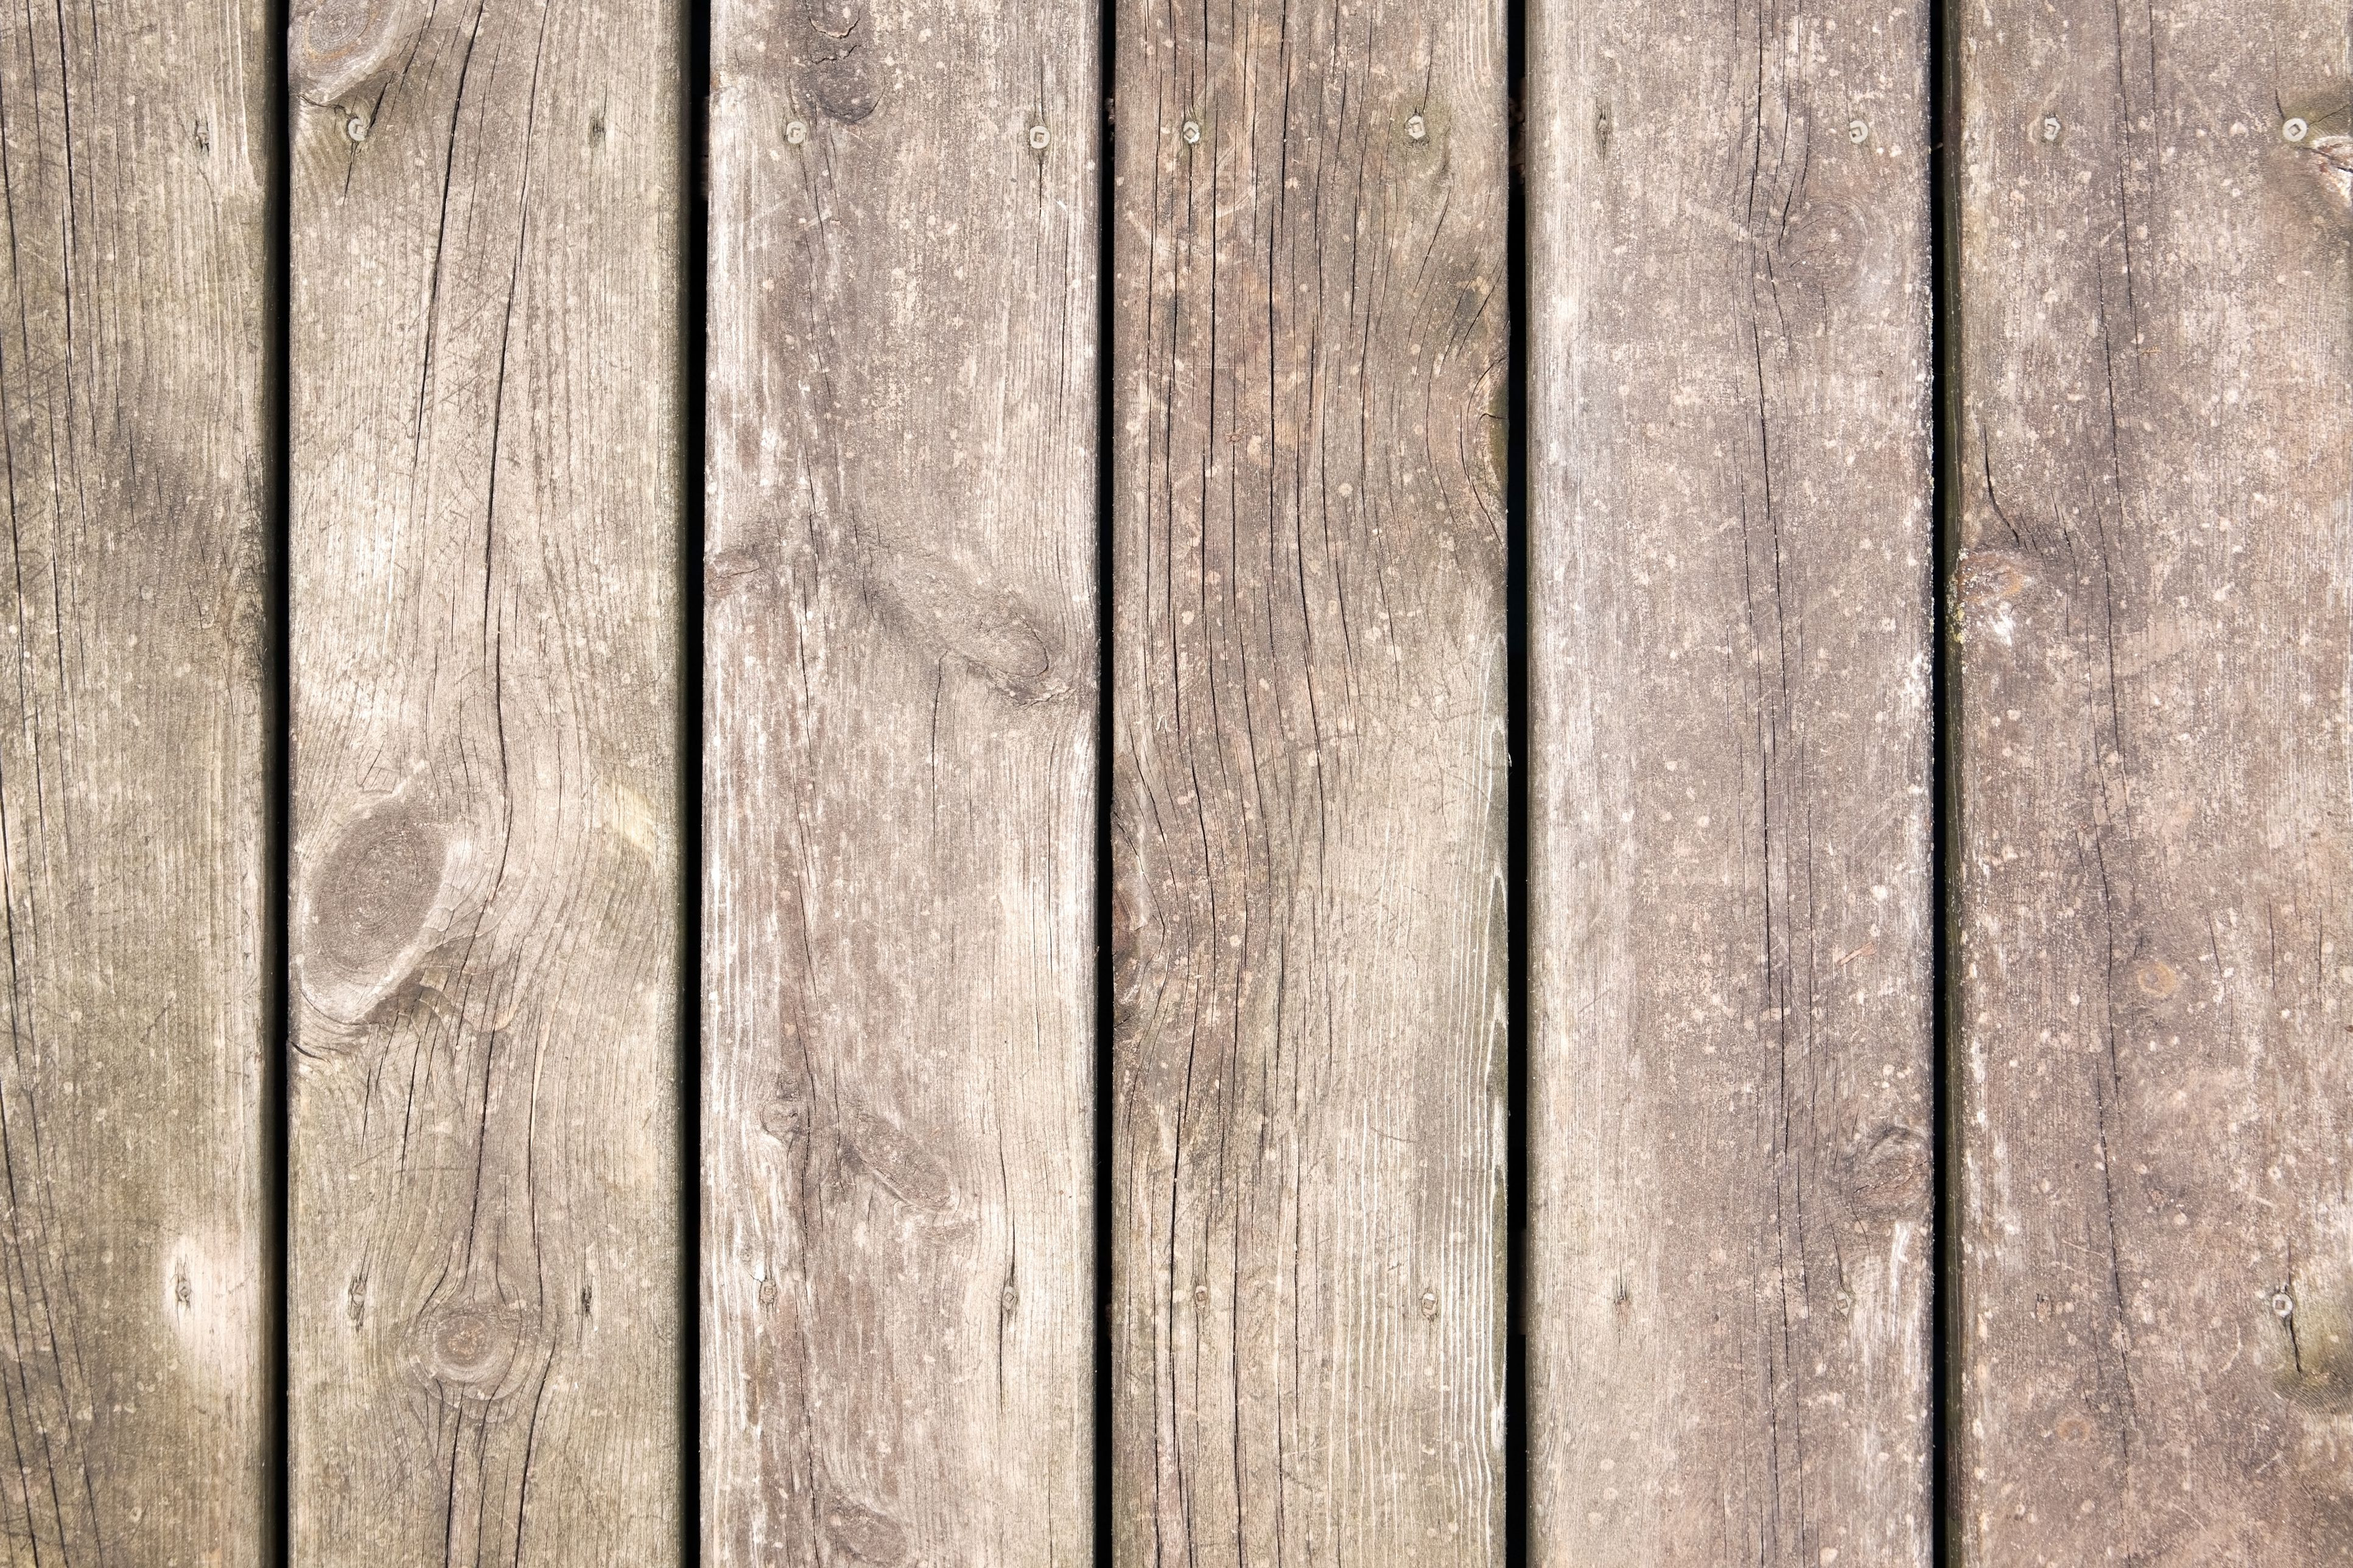 old hardwood floor texture of refinishing a wood deck an overview throughout weathered deck board background 171342280 5810fdcd3df78c2c7315c473